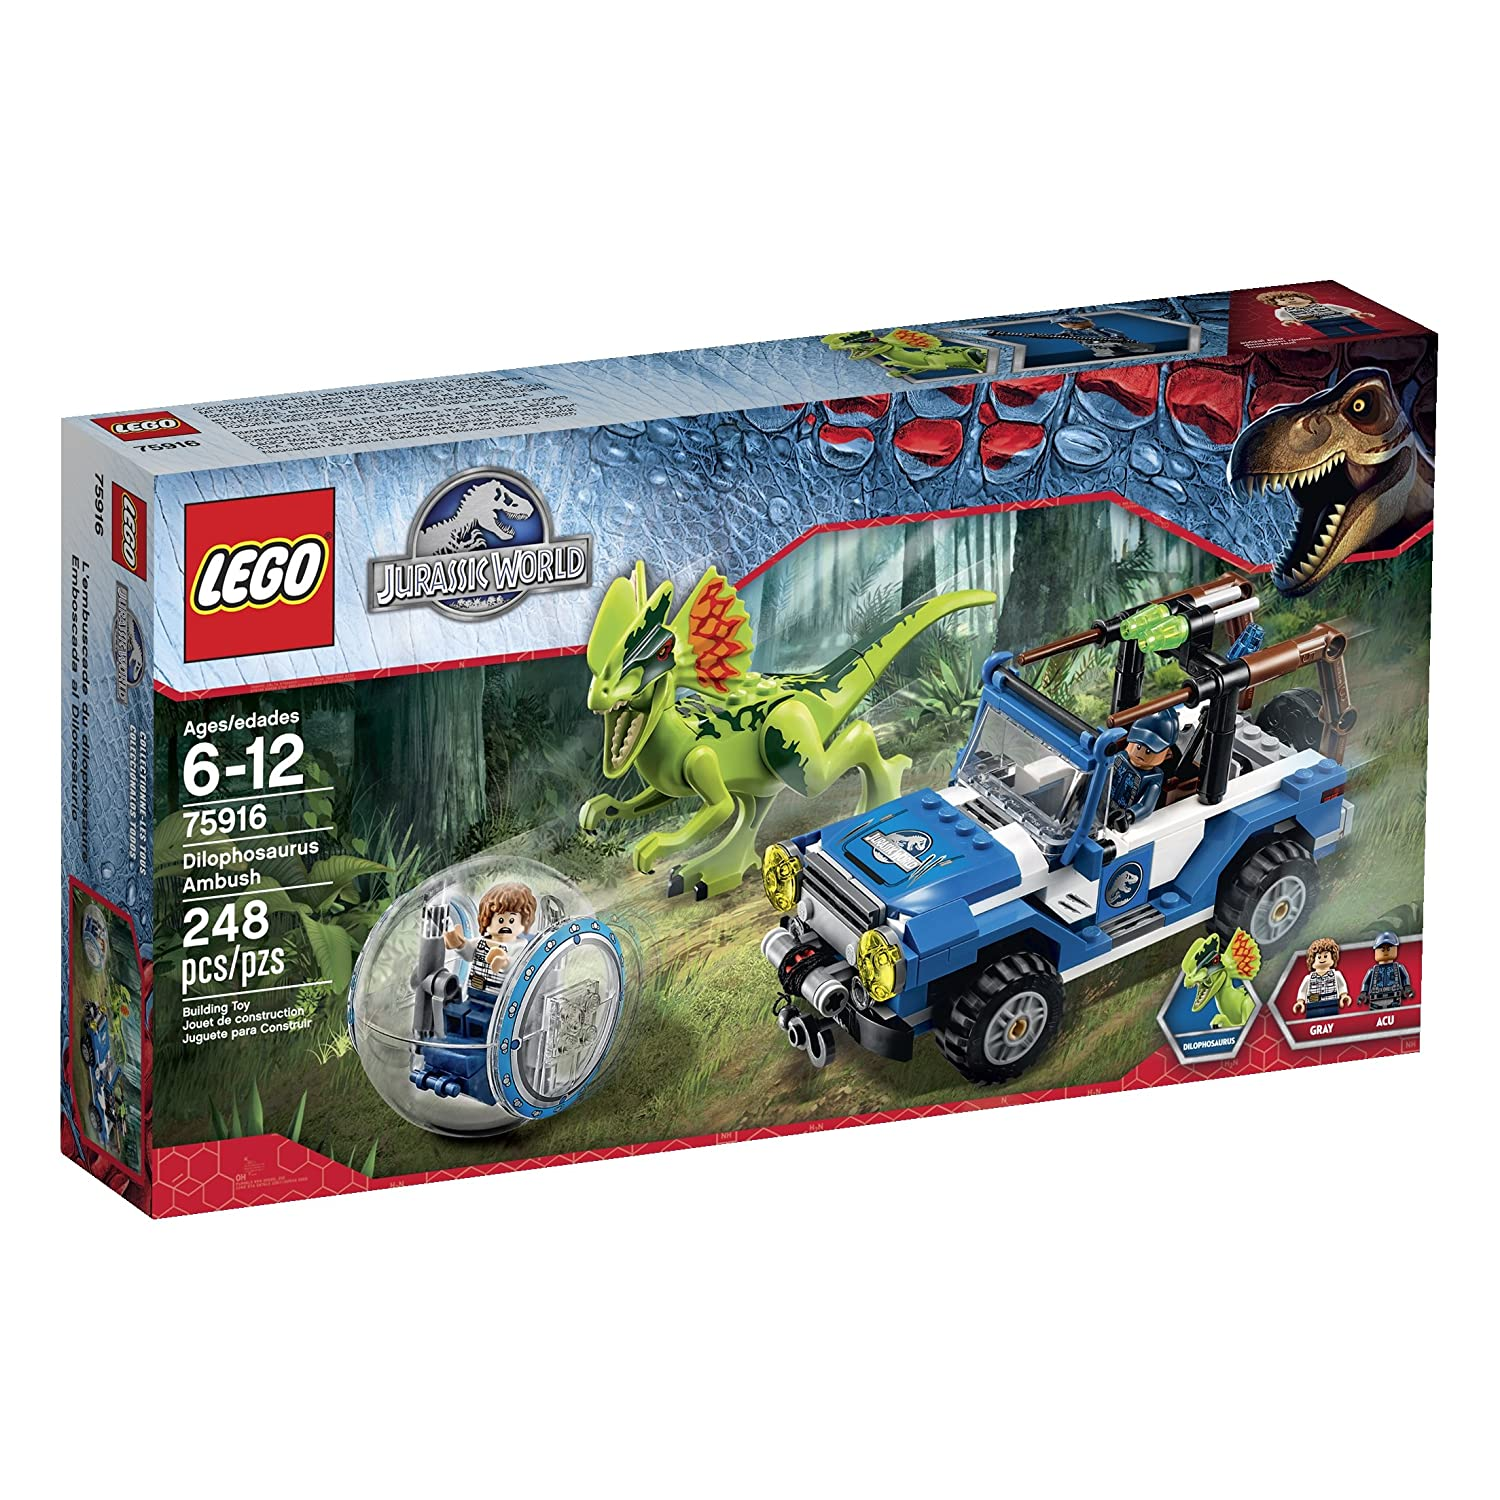 Top 8 Best Lego Dinosaurs Set Reviews in 2020 2